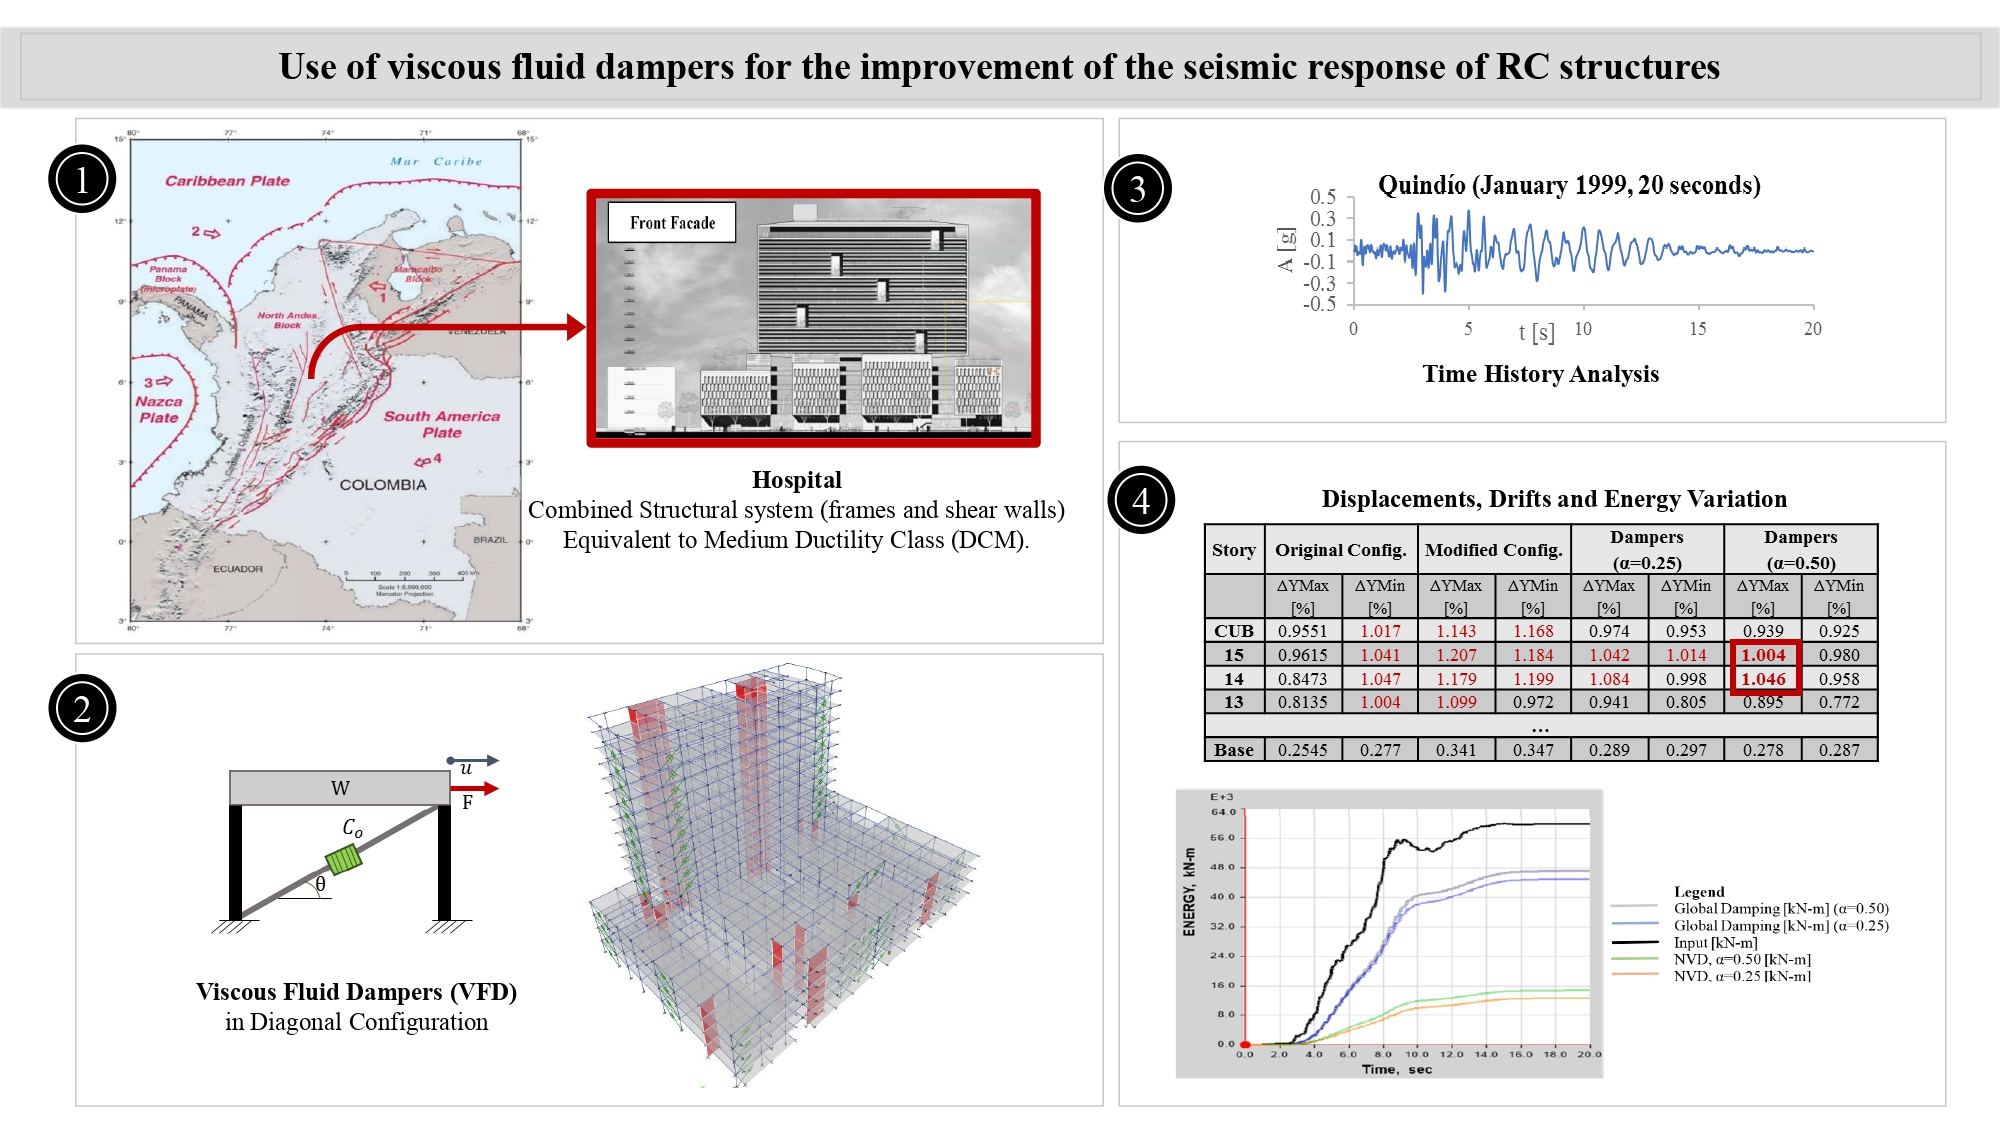 Use of viscous fluid dampers for the improvement of the